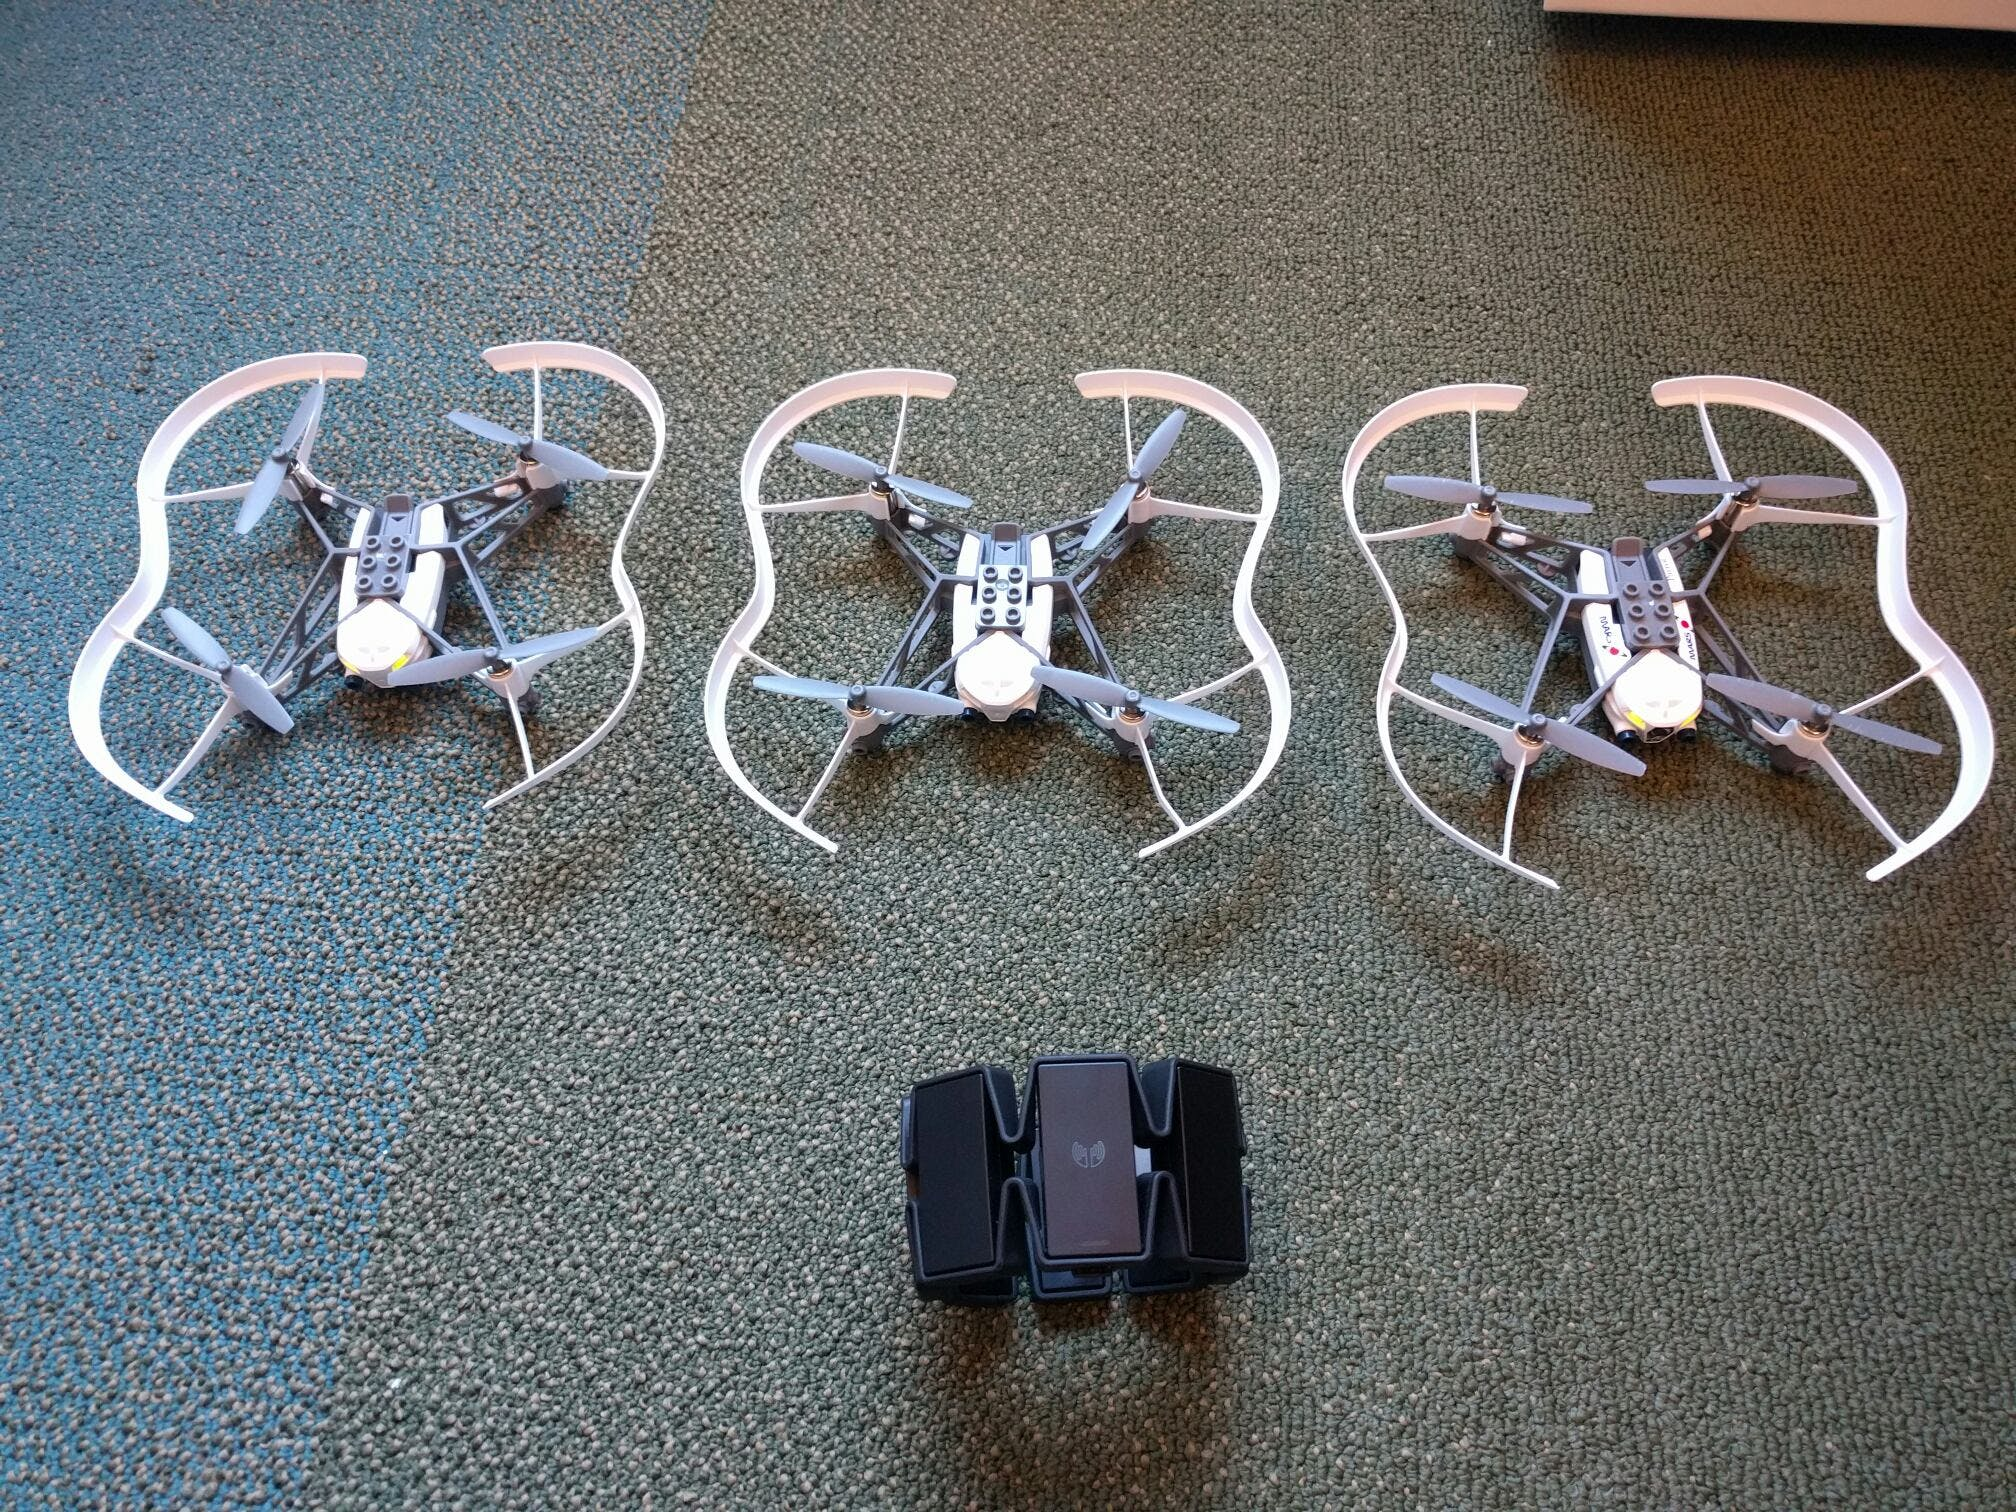 Control your Drone Swarm with Hand Gestures